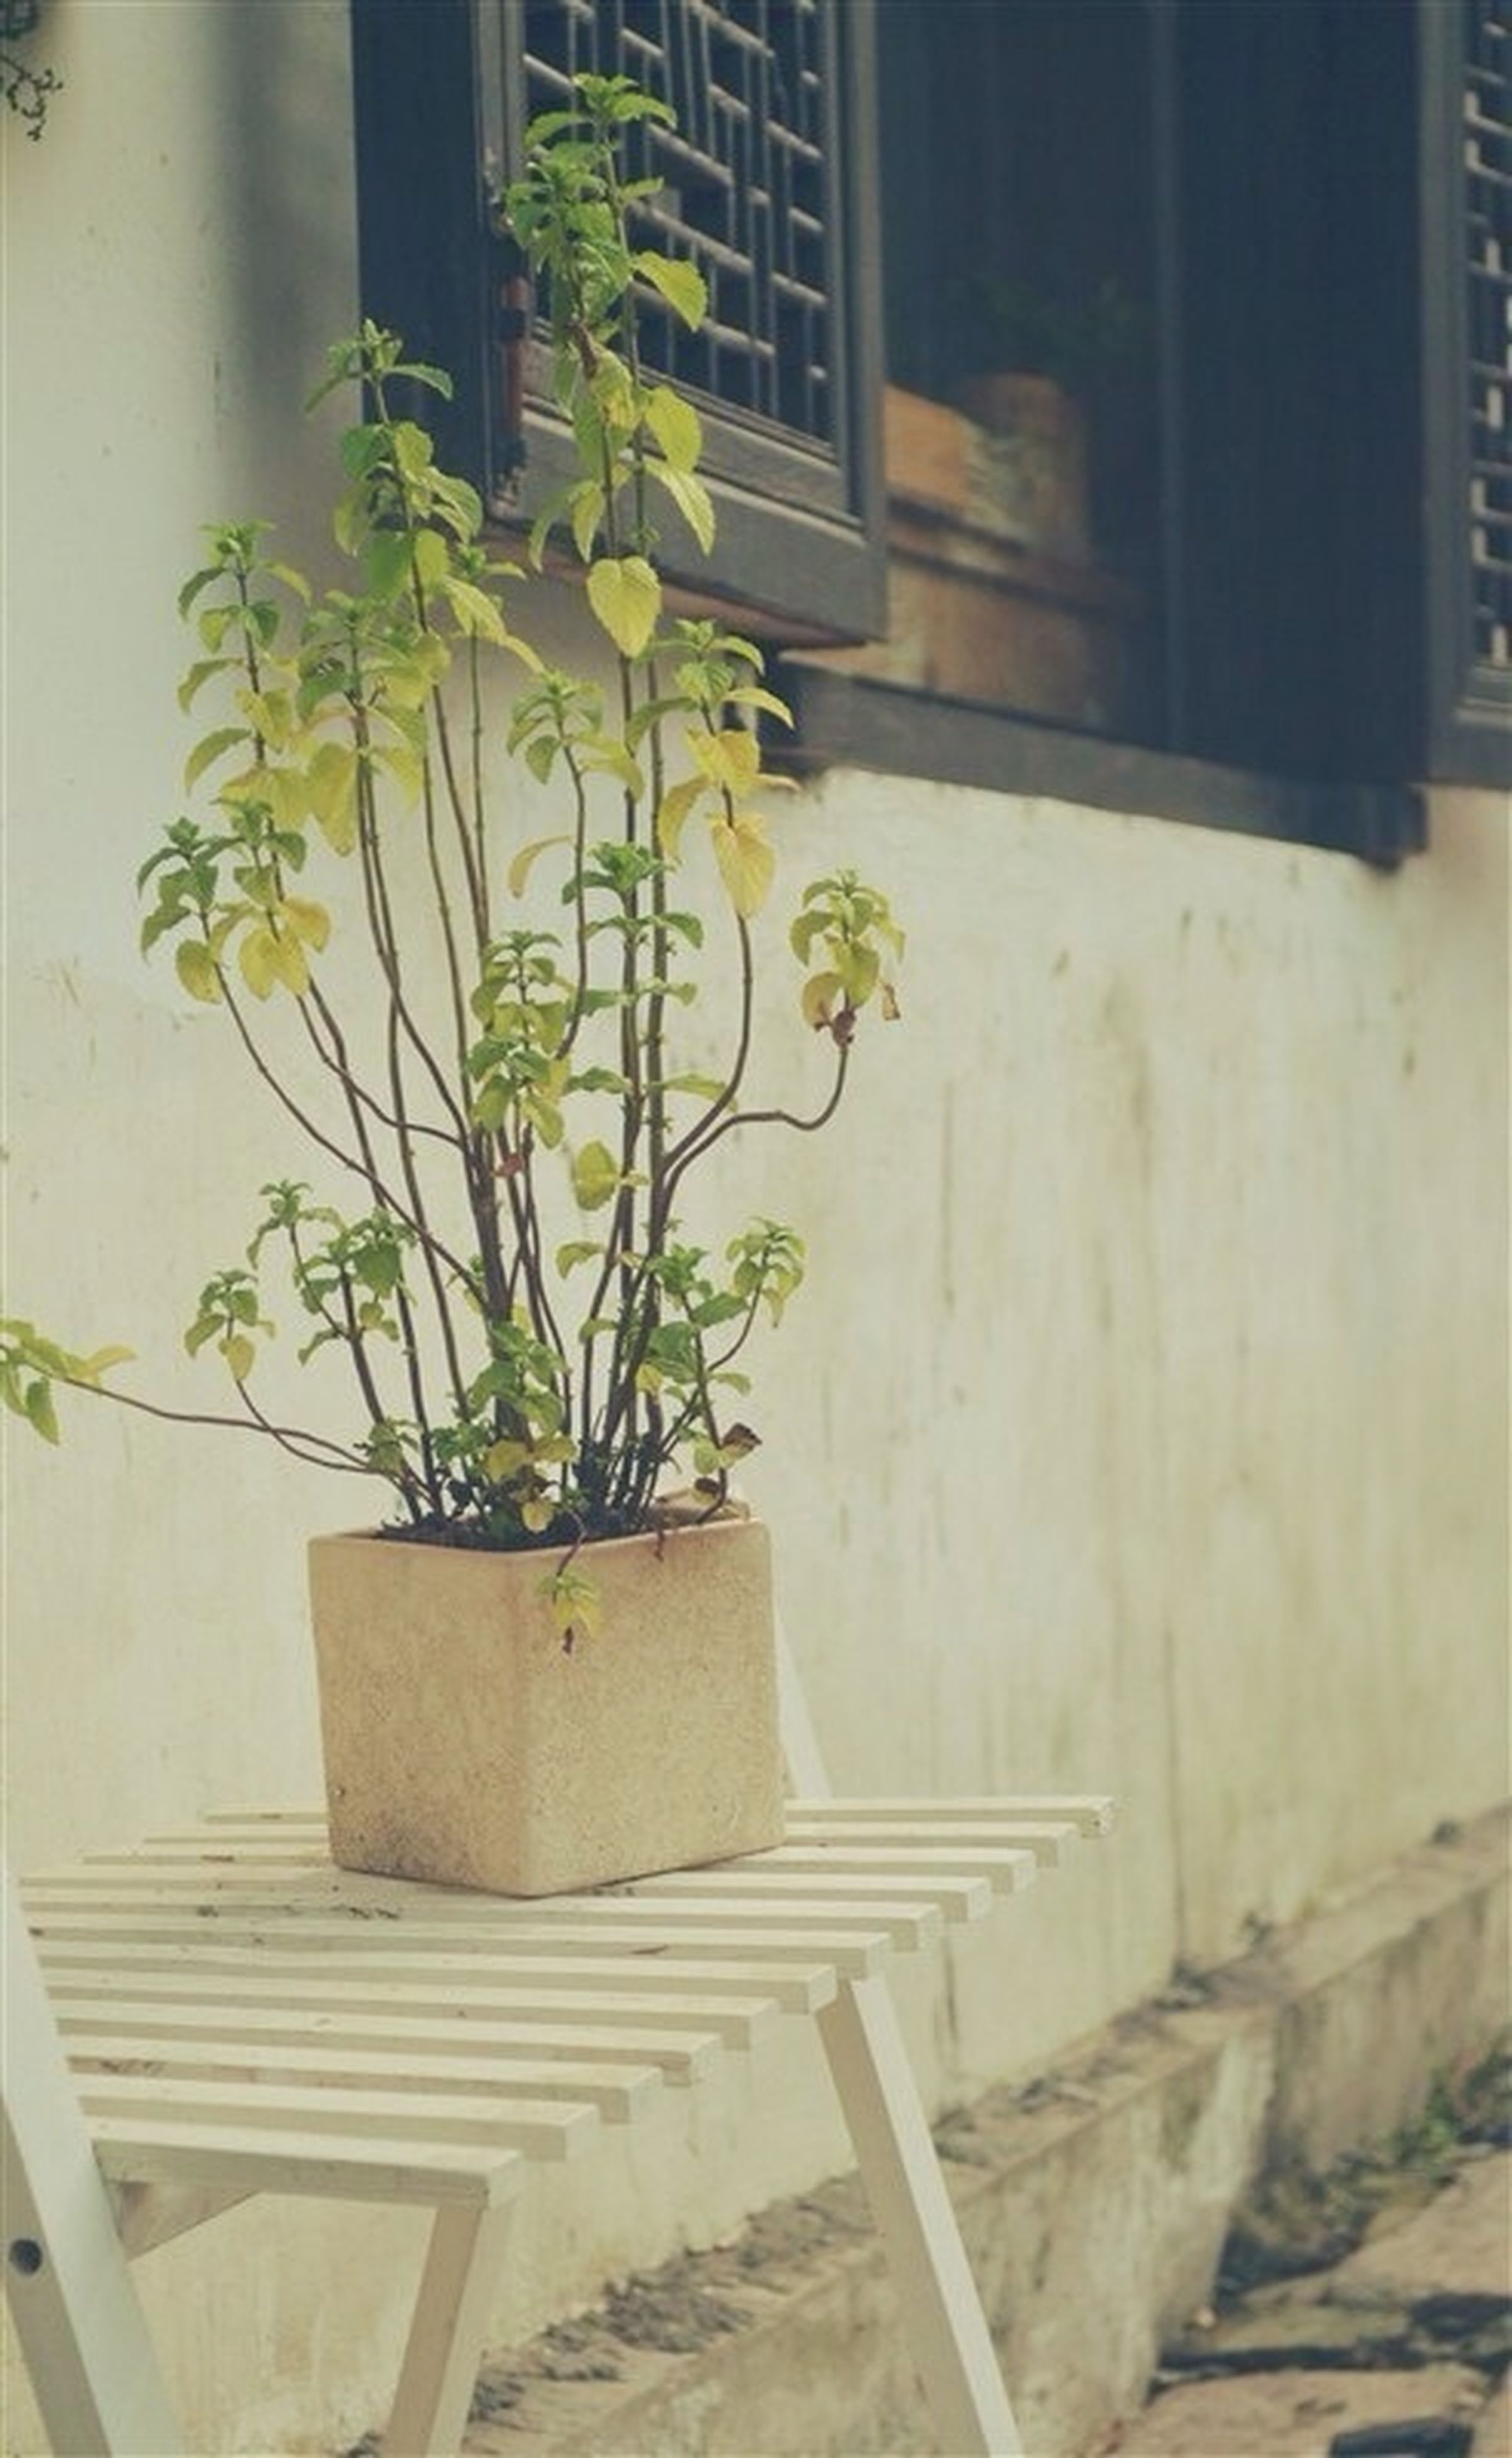 plant, potted plant, growth, built structure, architecture, flower, wall - building feature, leaf, building exterior, window, house, flower pot, wall, front or back yard, indoors, day, no people, window sill, sunlight, nature